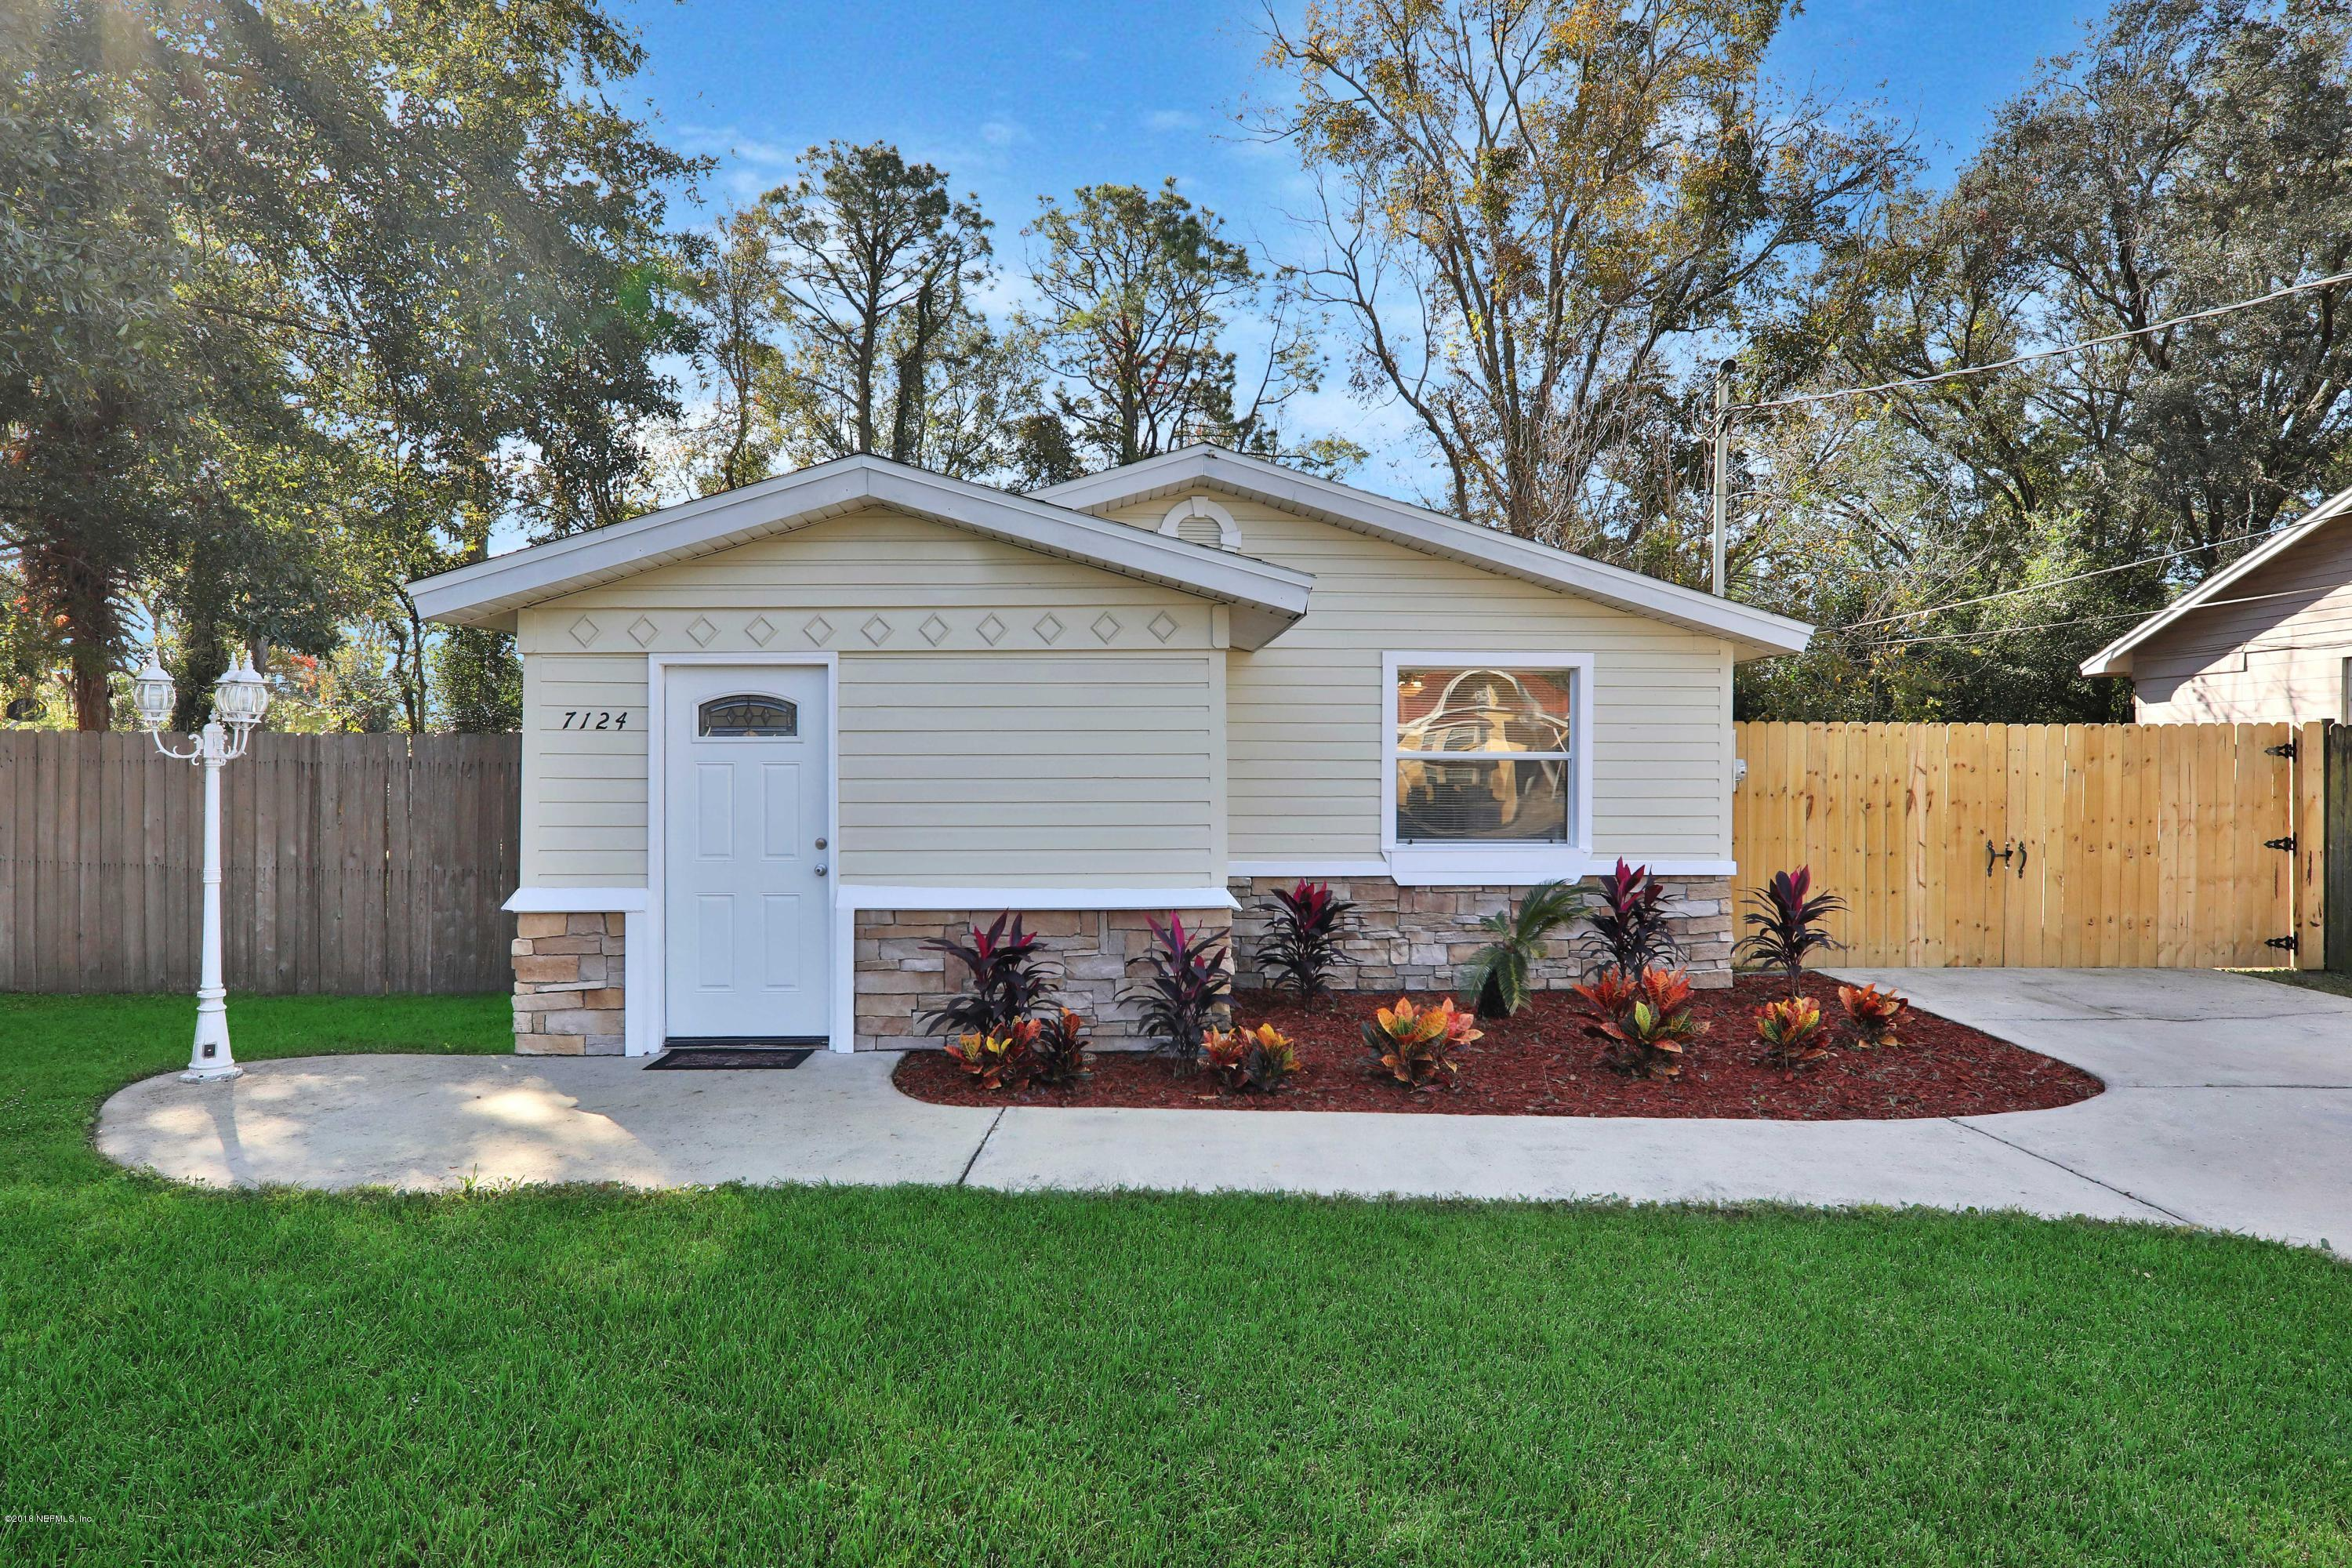 7124 ESTHER, JACKSONVILLE, FLORIDA 32210, 3 Bedrooms Bedrooms, ,1 BathroomBathrooms,Residential - single family,For sale,ESTHER,970063